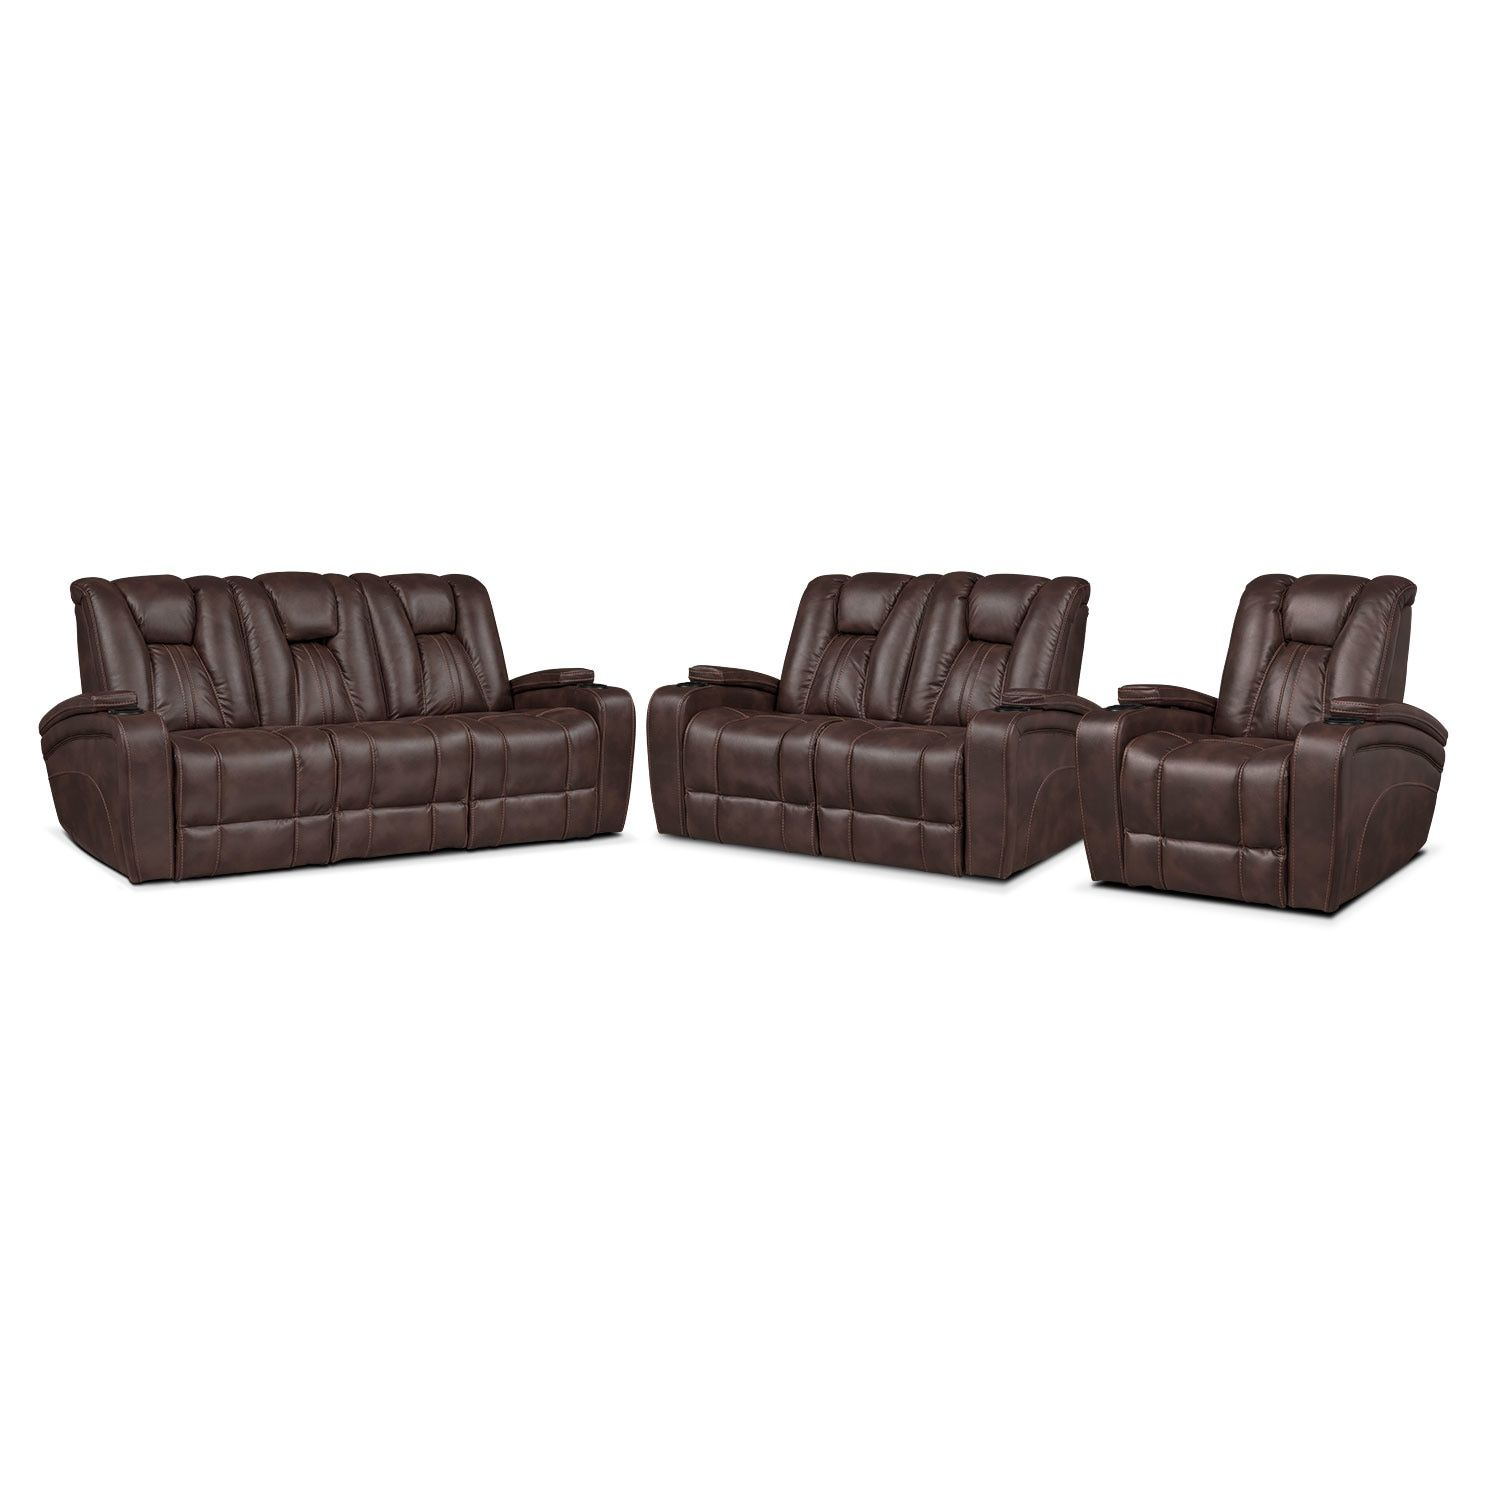 Pulsar Power Reclining Sofa Power Reclining Loveseat And Power Recliner Set Brown Products Power Reclining Loveseat Reclining Sofa Power Recliners